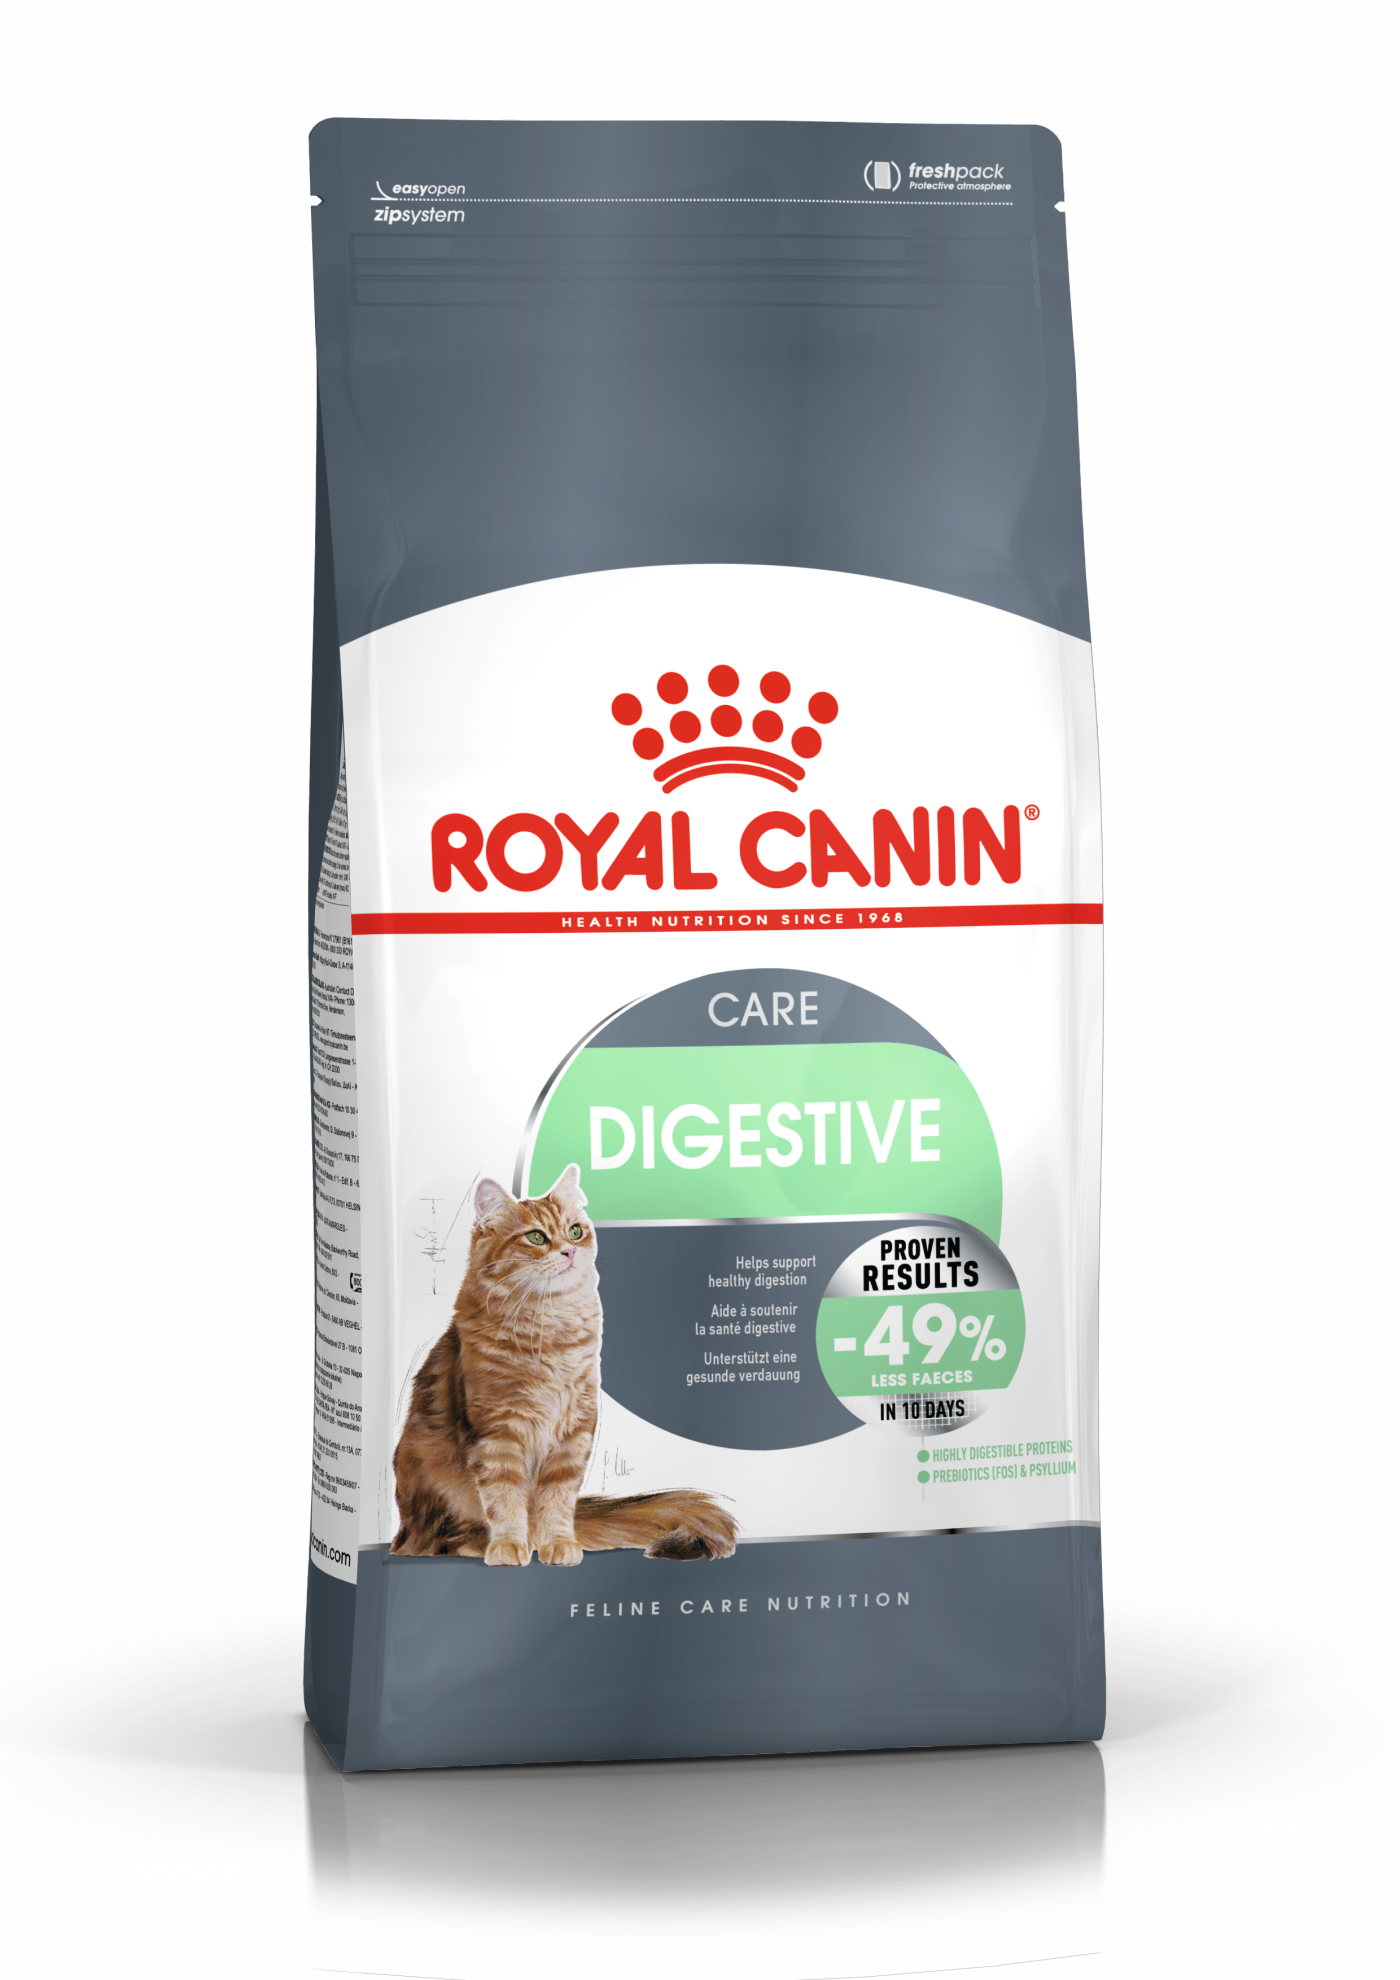 Digestive Care product image